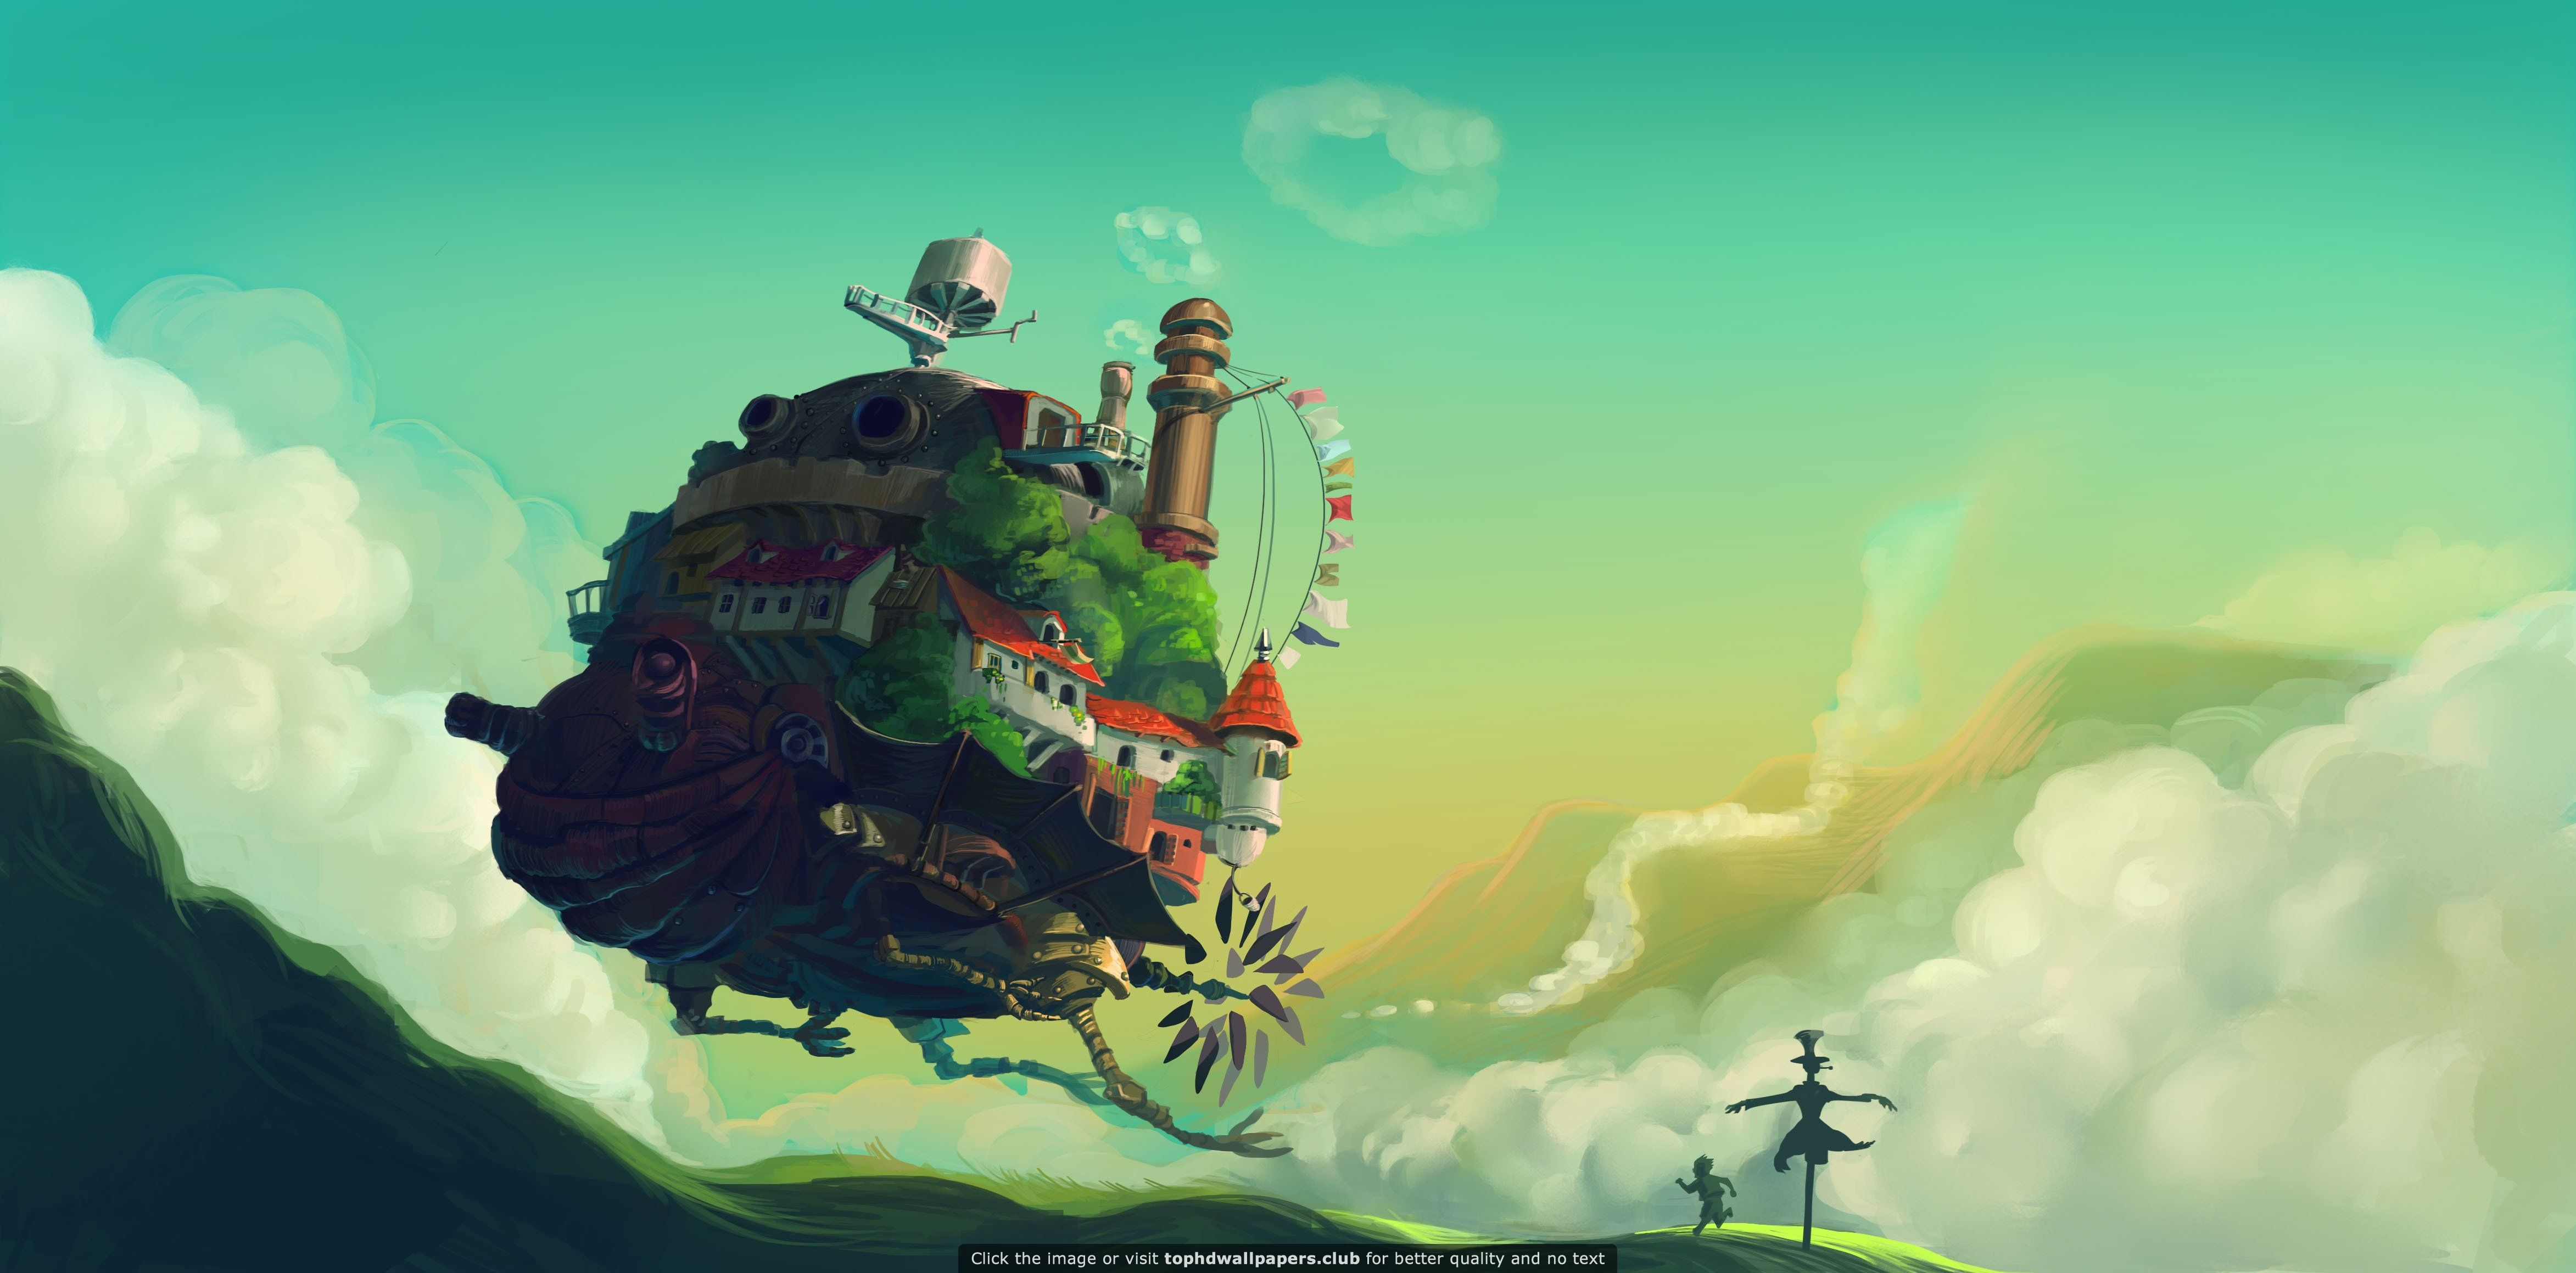 Howl moving castle 4k or hd wallpaper for your pc mac or - 4k moving wallpaper ...